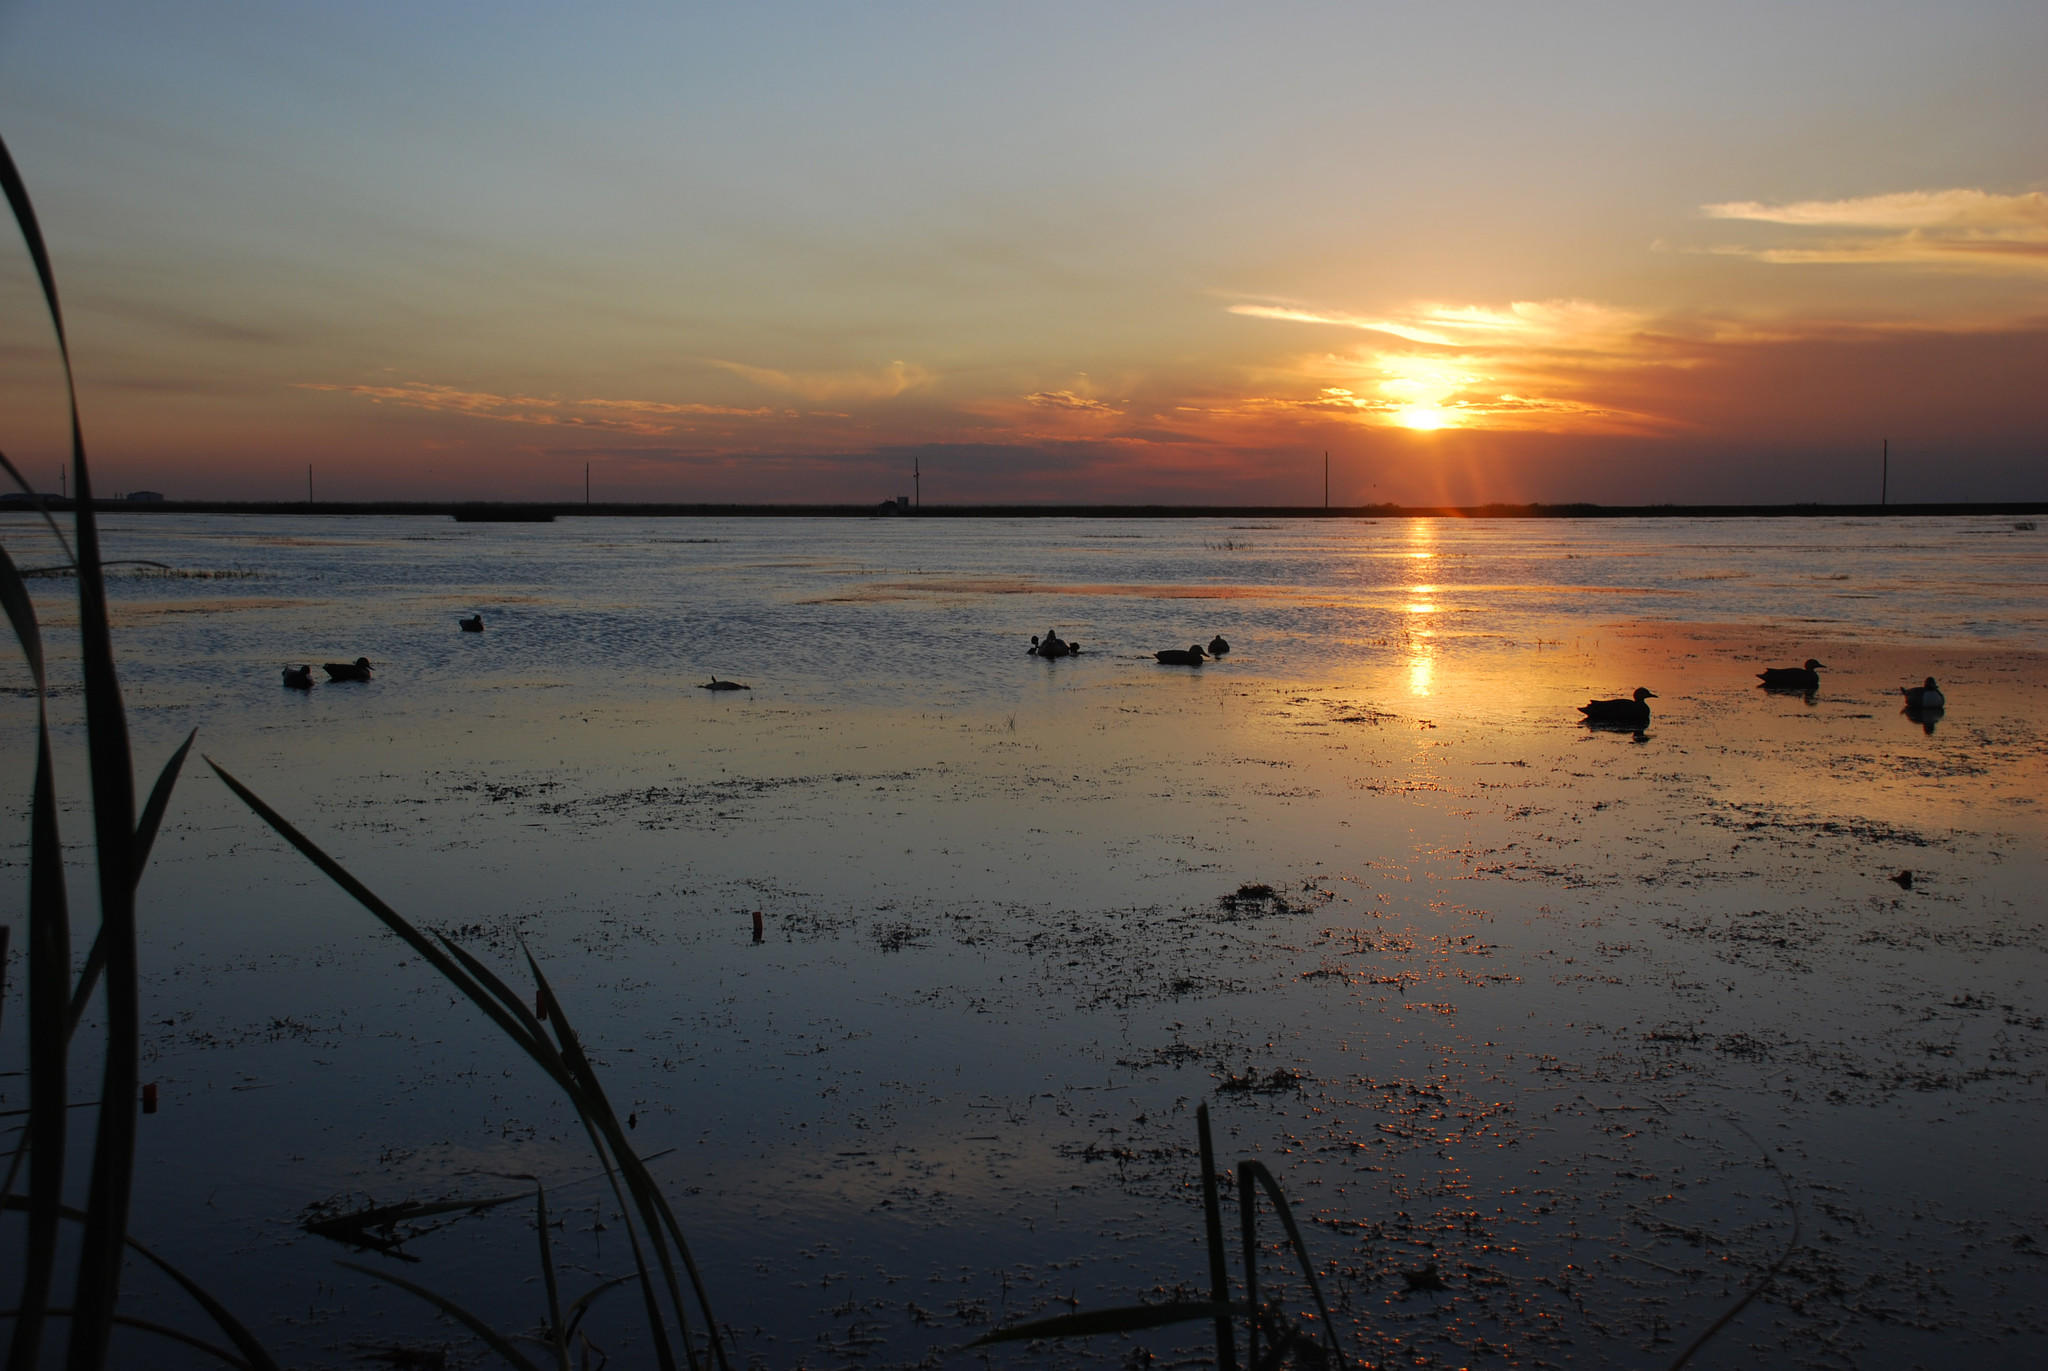 The sun sets over a decoy spread at Stormwater Treatment Area 1 West, one of the best places in the country to hunt ducks.